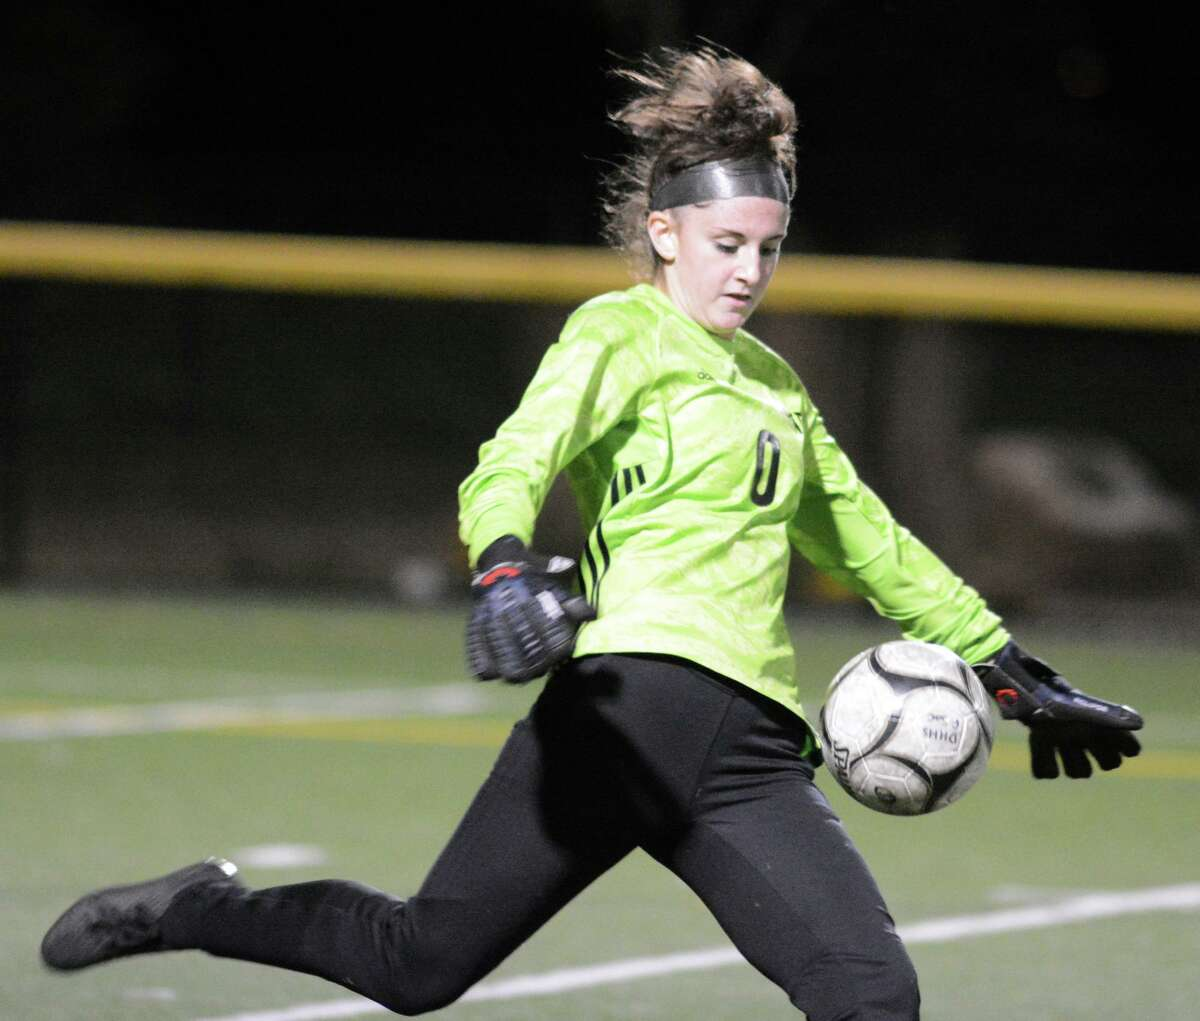 Daniel Hand goalie Brooke Salvati kicks the ball during a girls soccer game against Guilford on Tuesday, Oct. 27, 2020 in Madison, Conn.